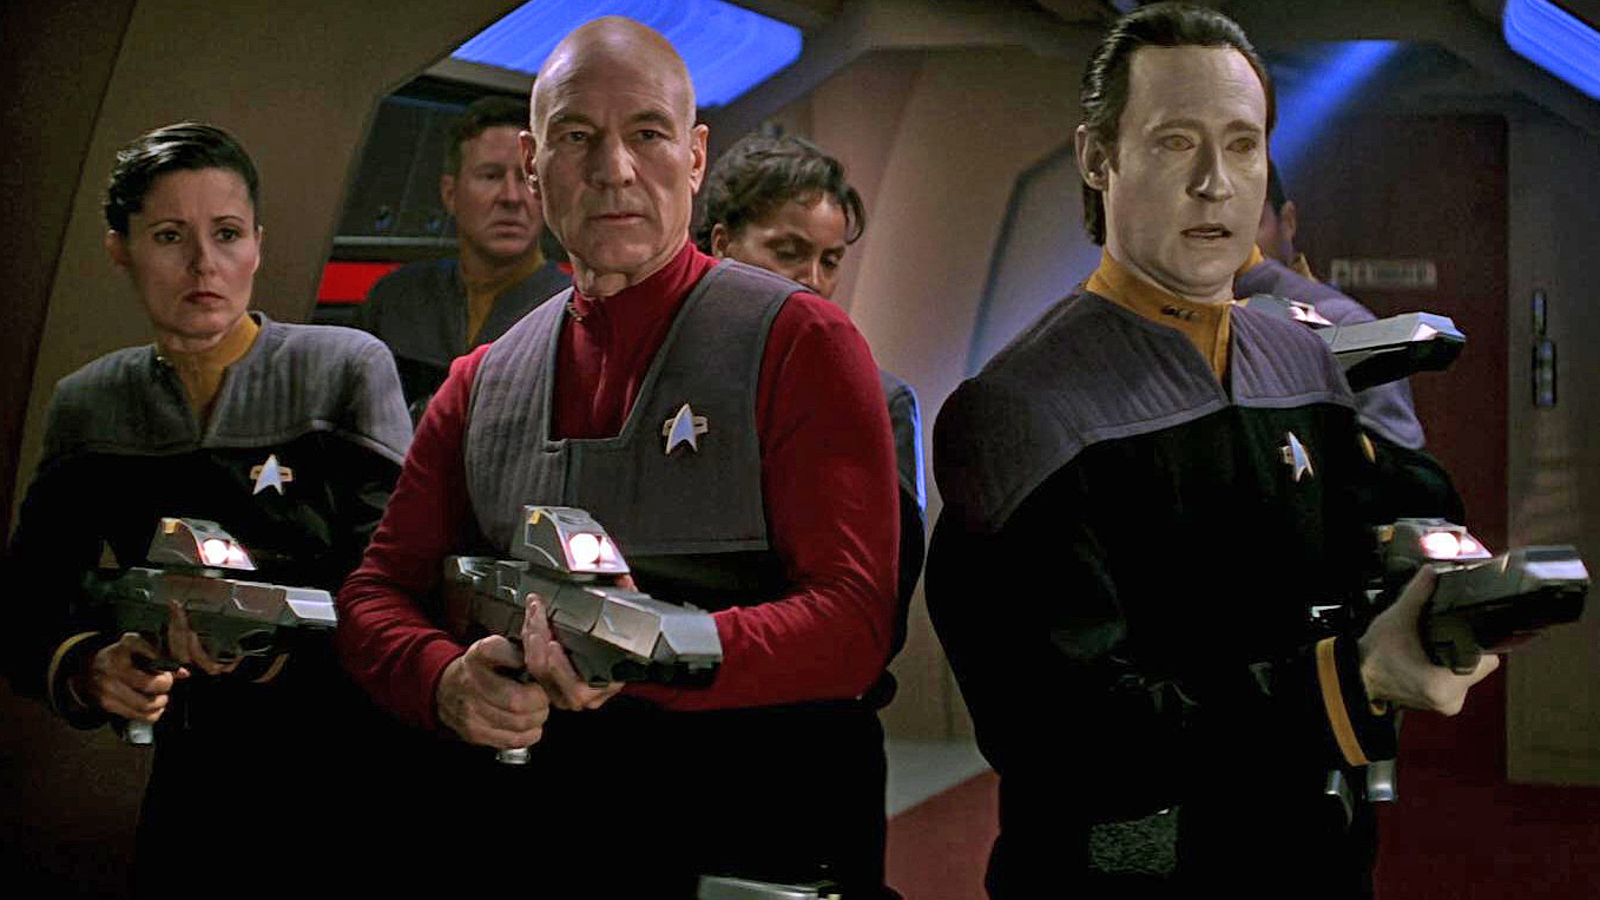 The Nerd's Watch: The Best Sci-Fi and Fantasy Streaming in August